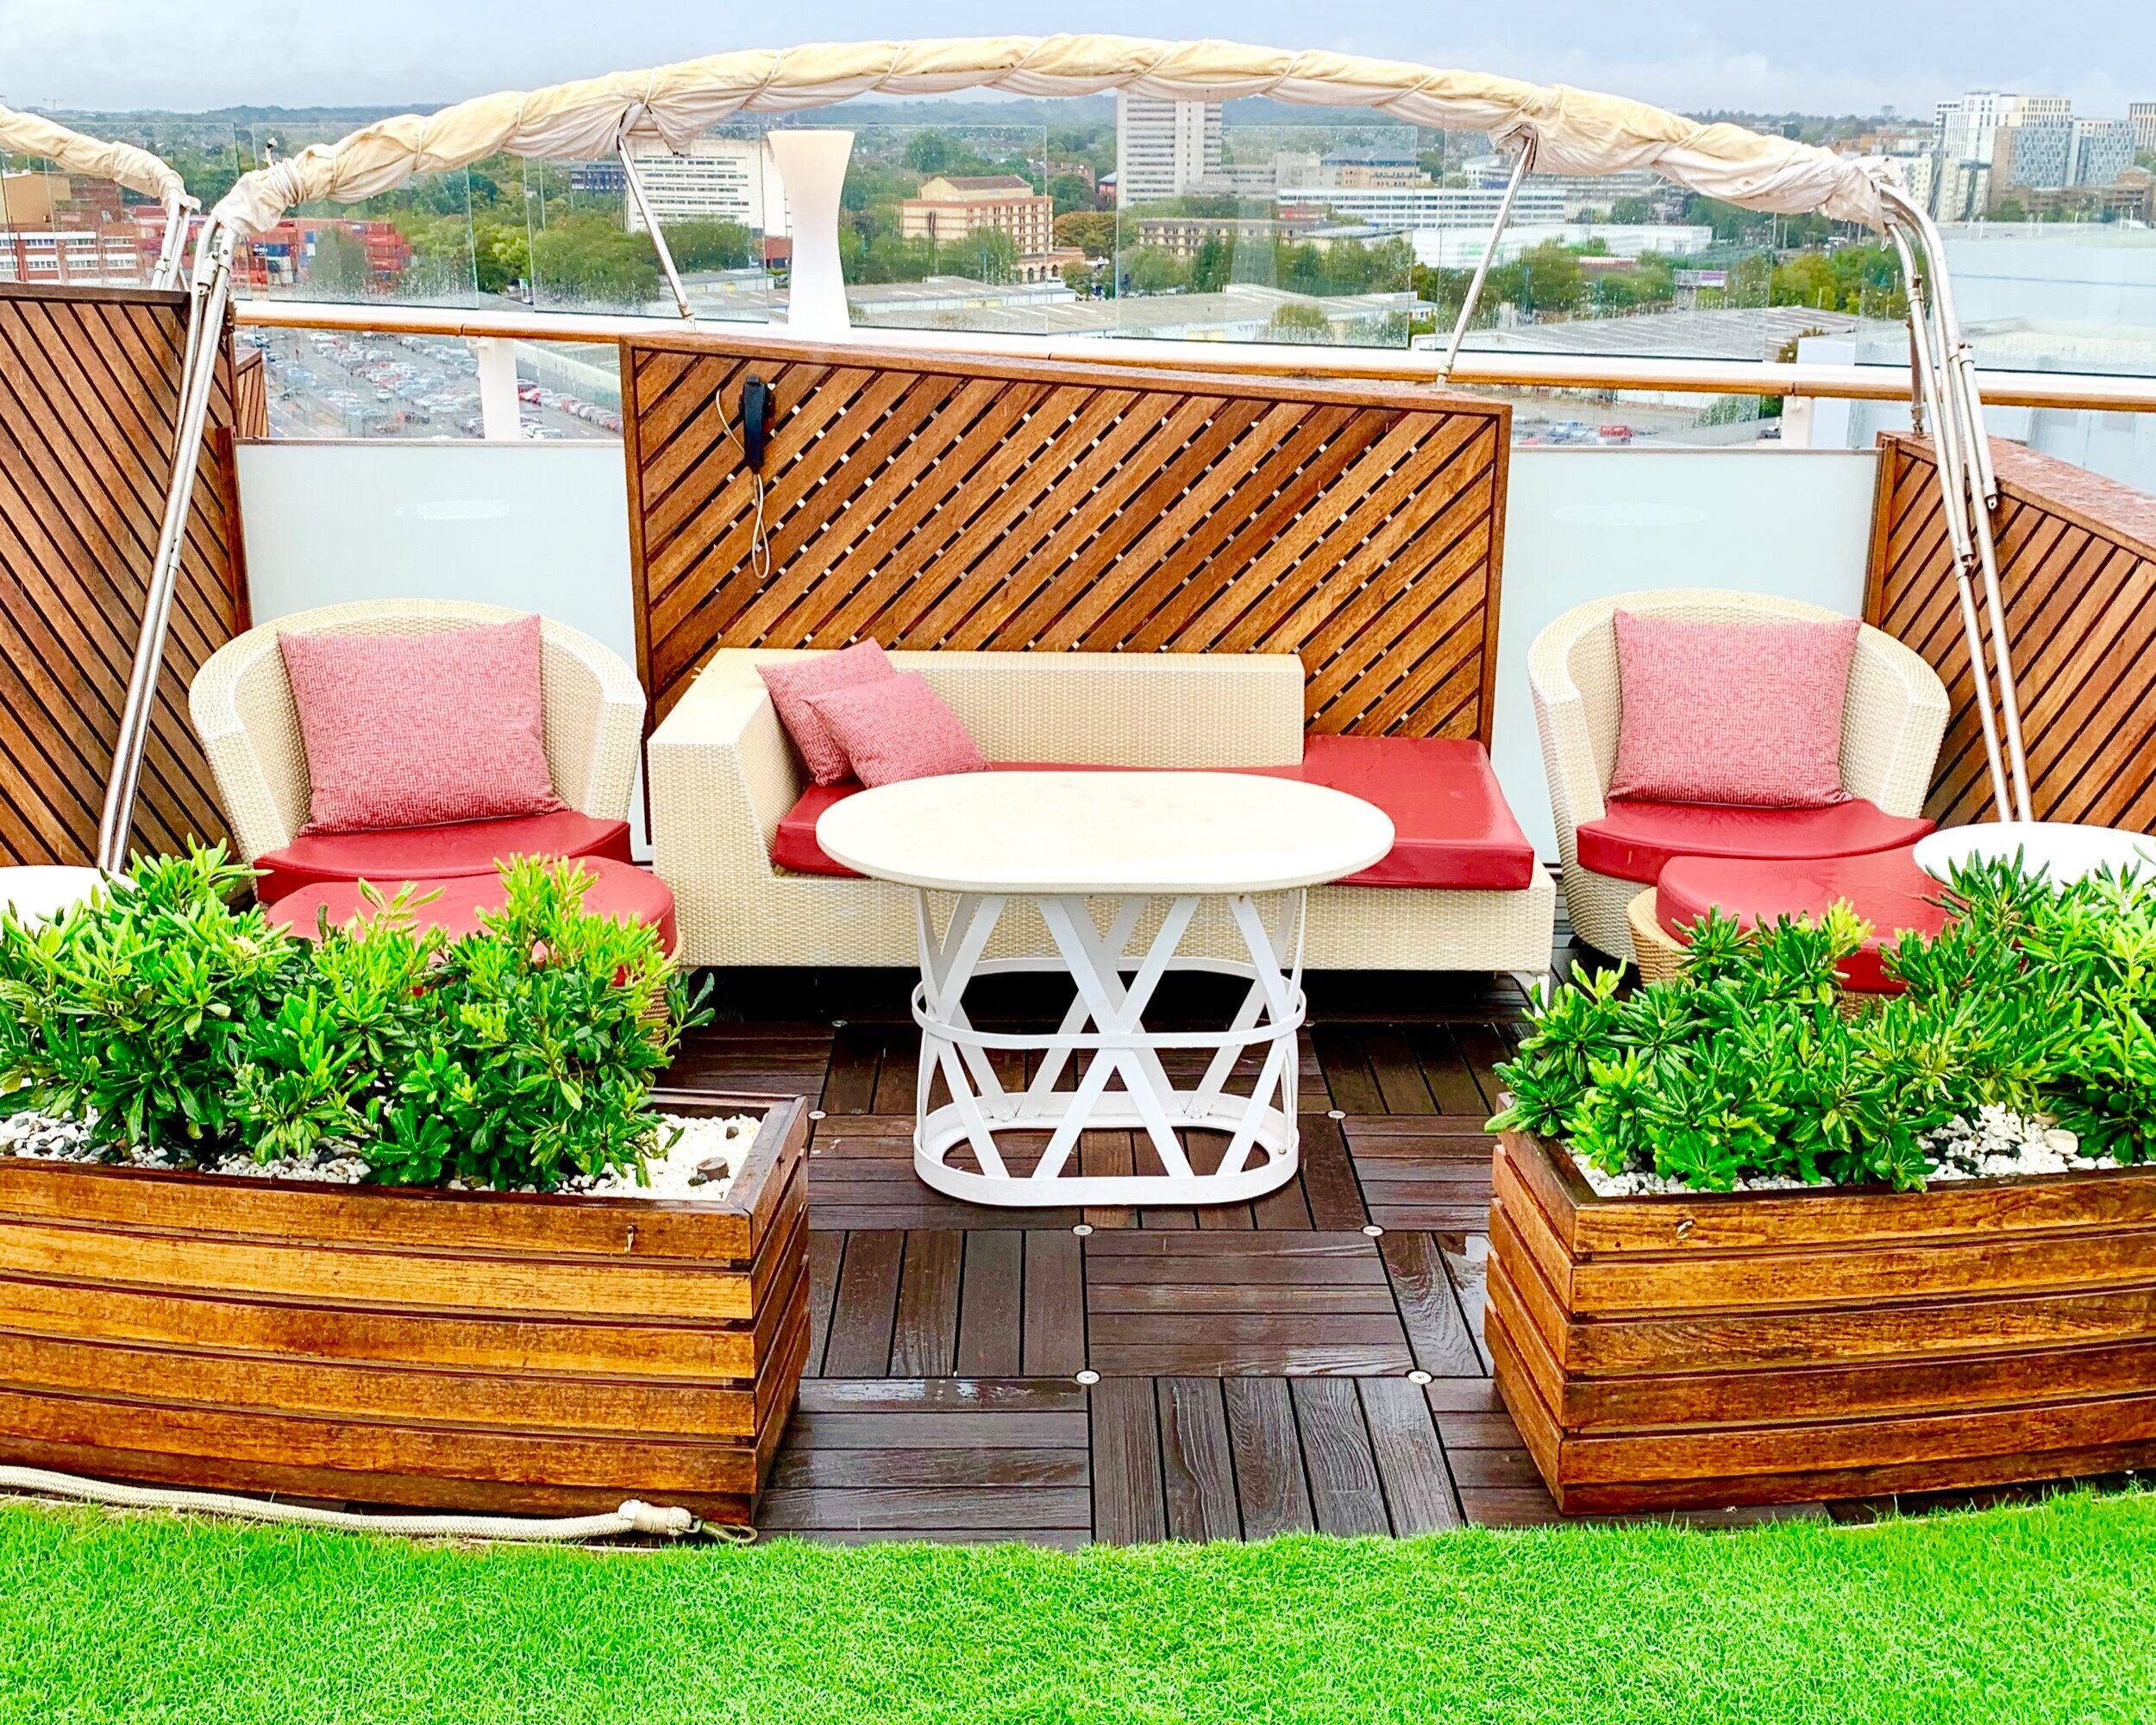 The private cabanas at the Lawn Club